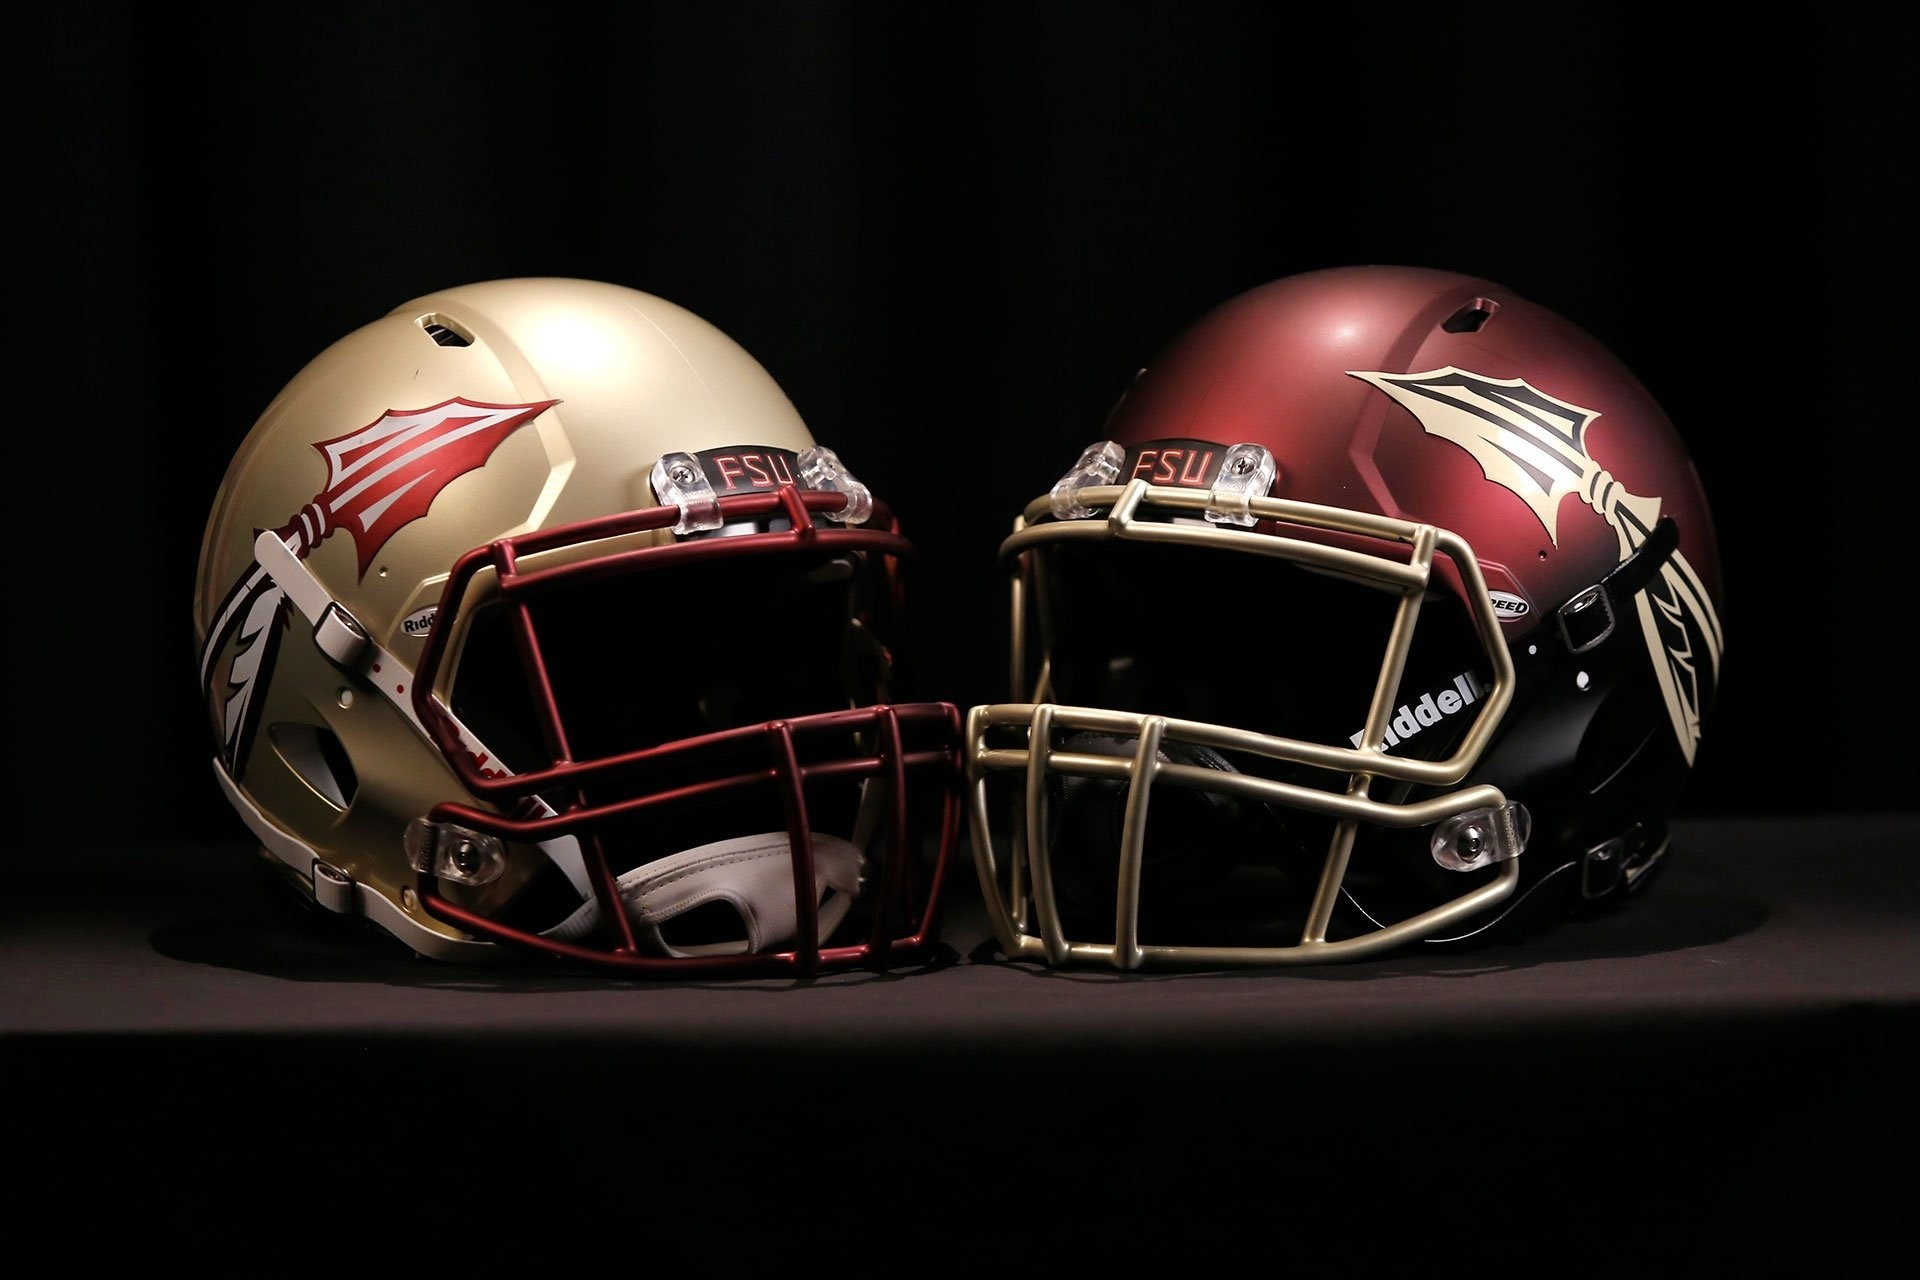 1920x1280 Title : florida state seminoles desktop wallpaper hd high quality of pc.  Dimension : 1920 x 1280. File Type : JPG/JPEG